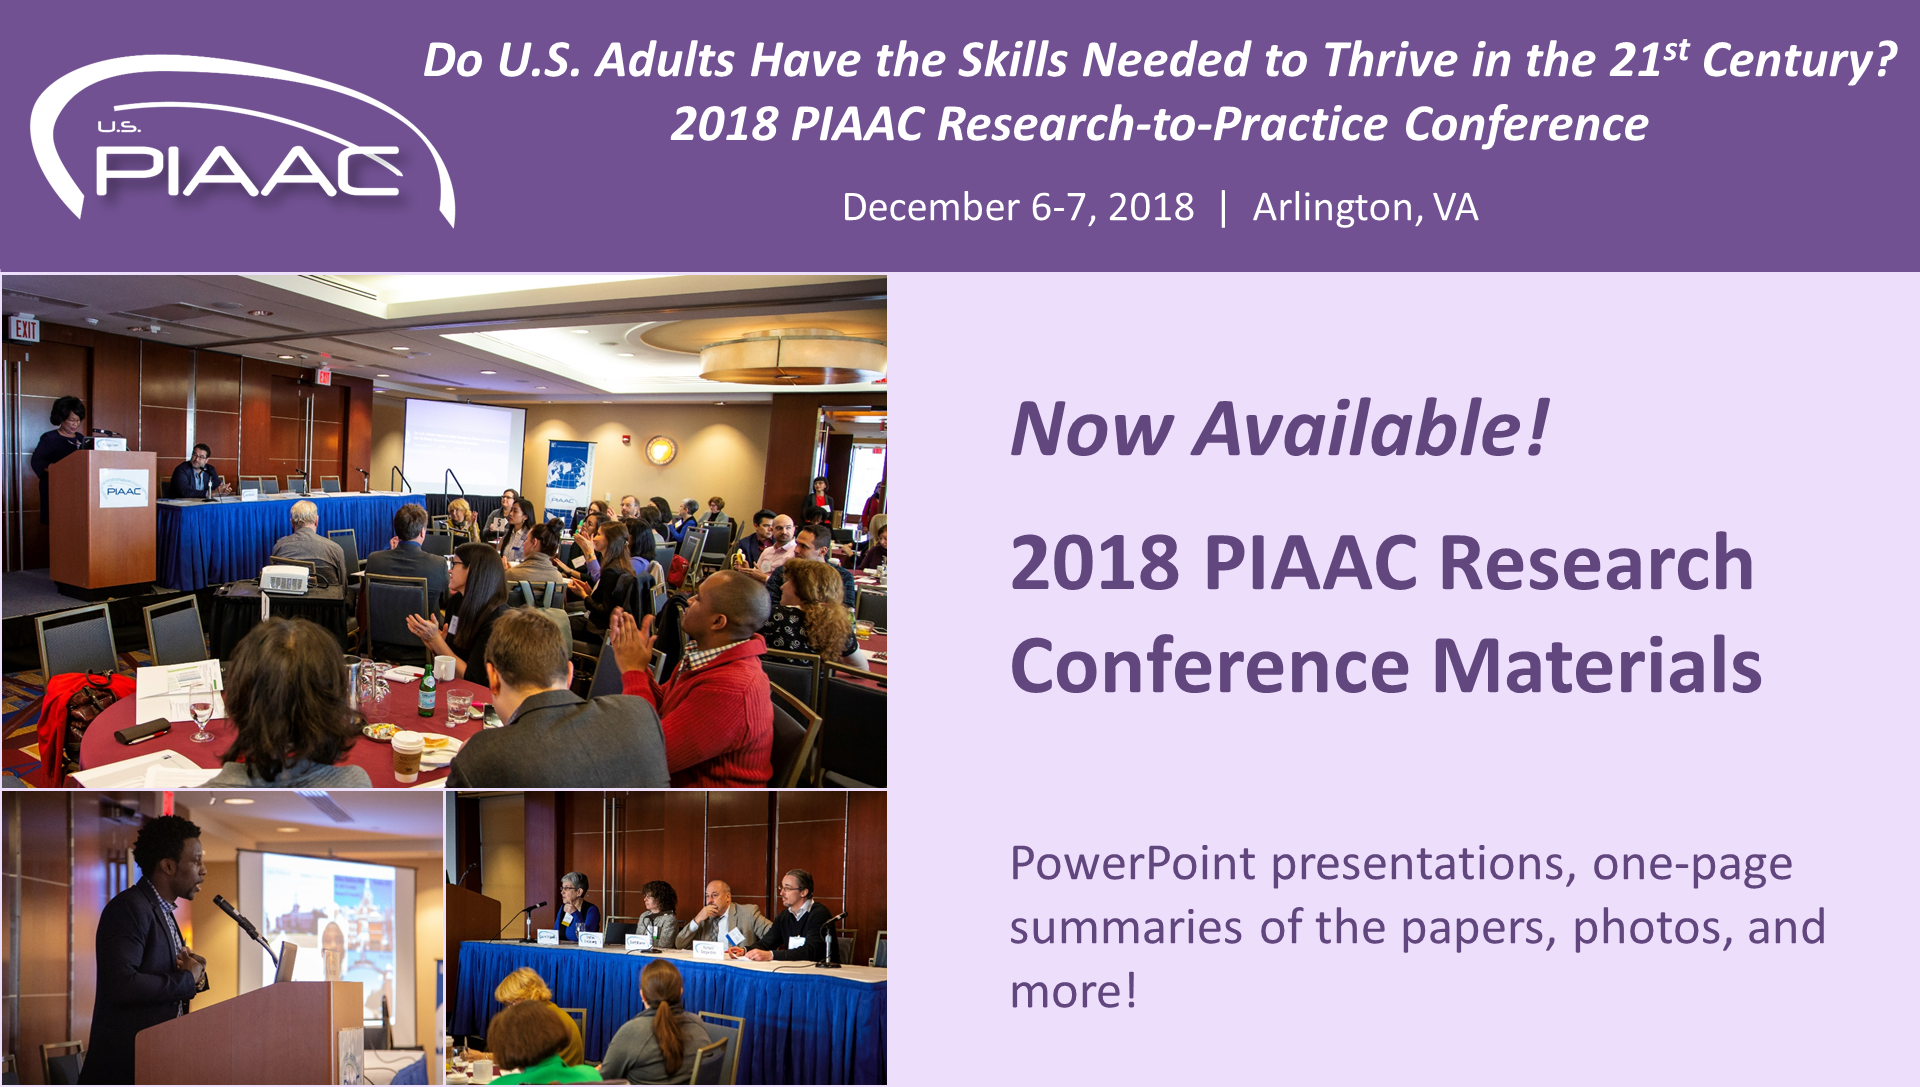 2018 PIAAC Research-to-Practice Conference Materials